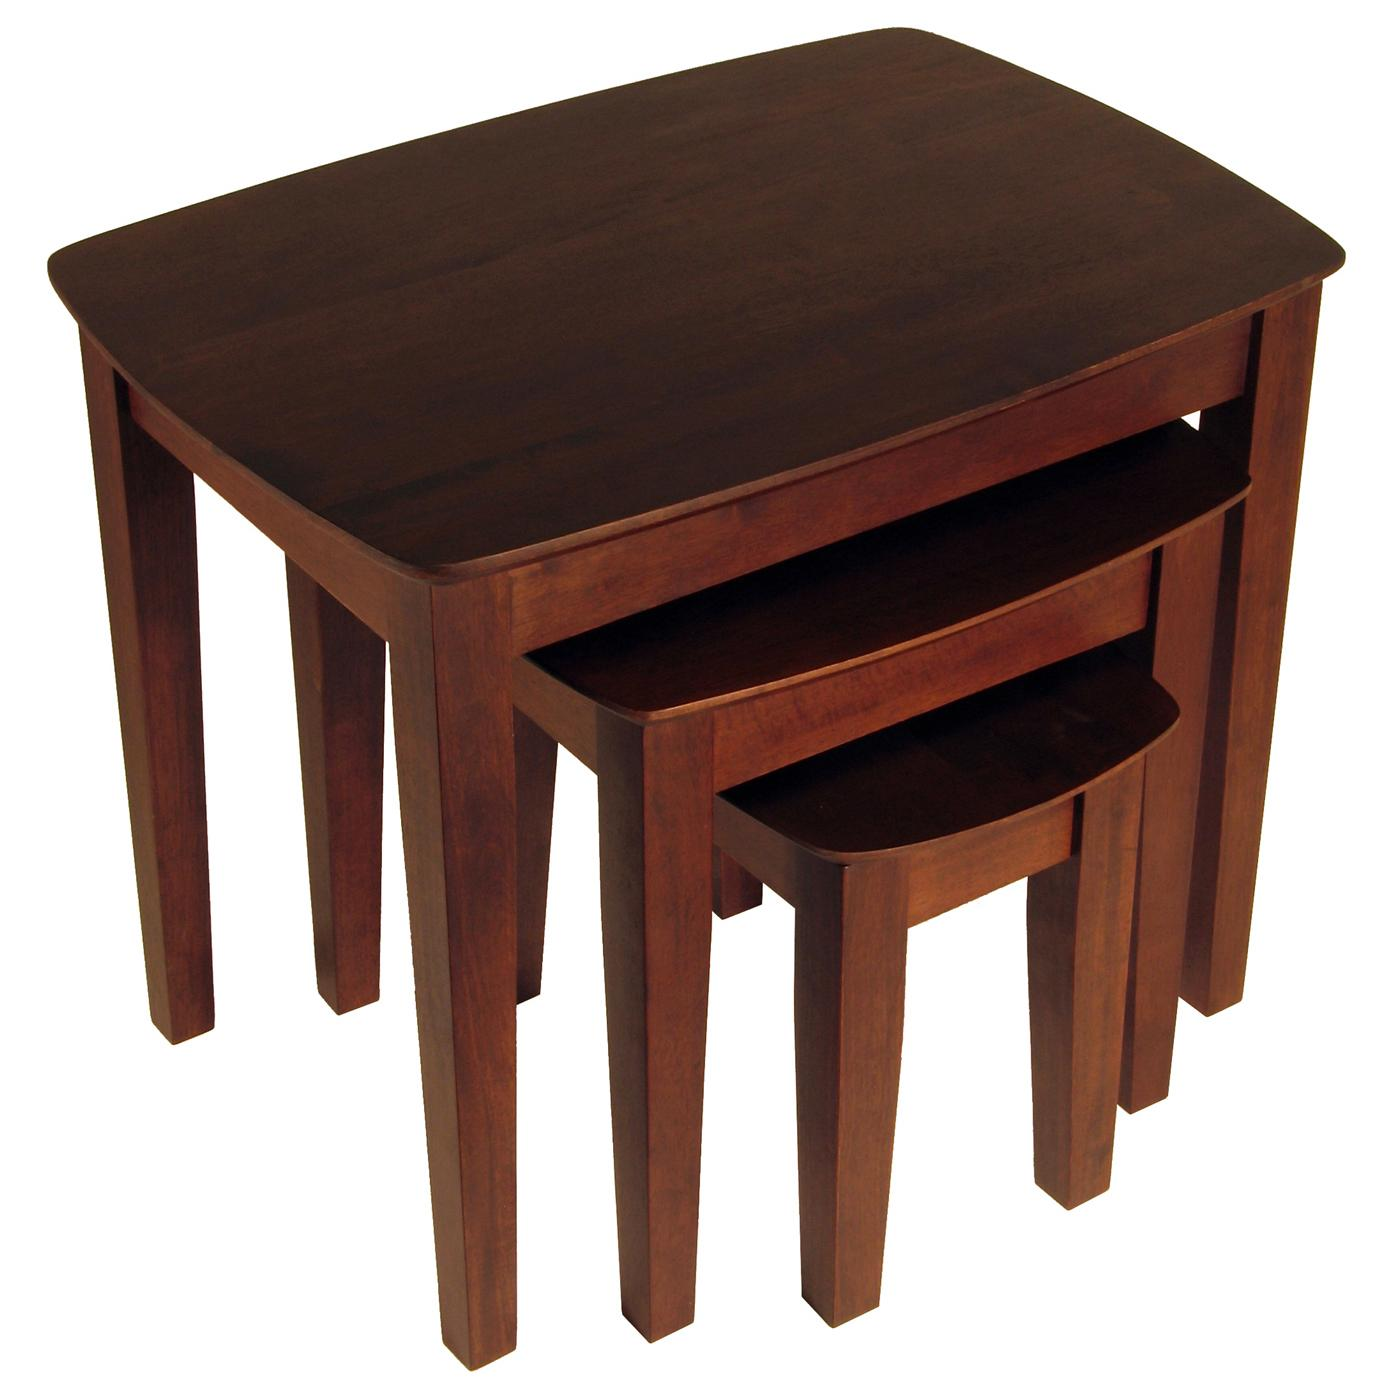 Stacking End Tables 3pc Nesting Table 113 59 Ojcommerce